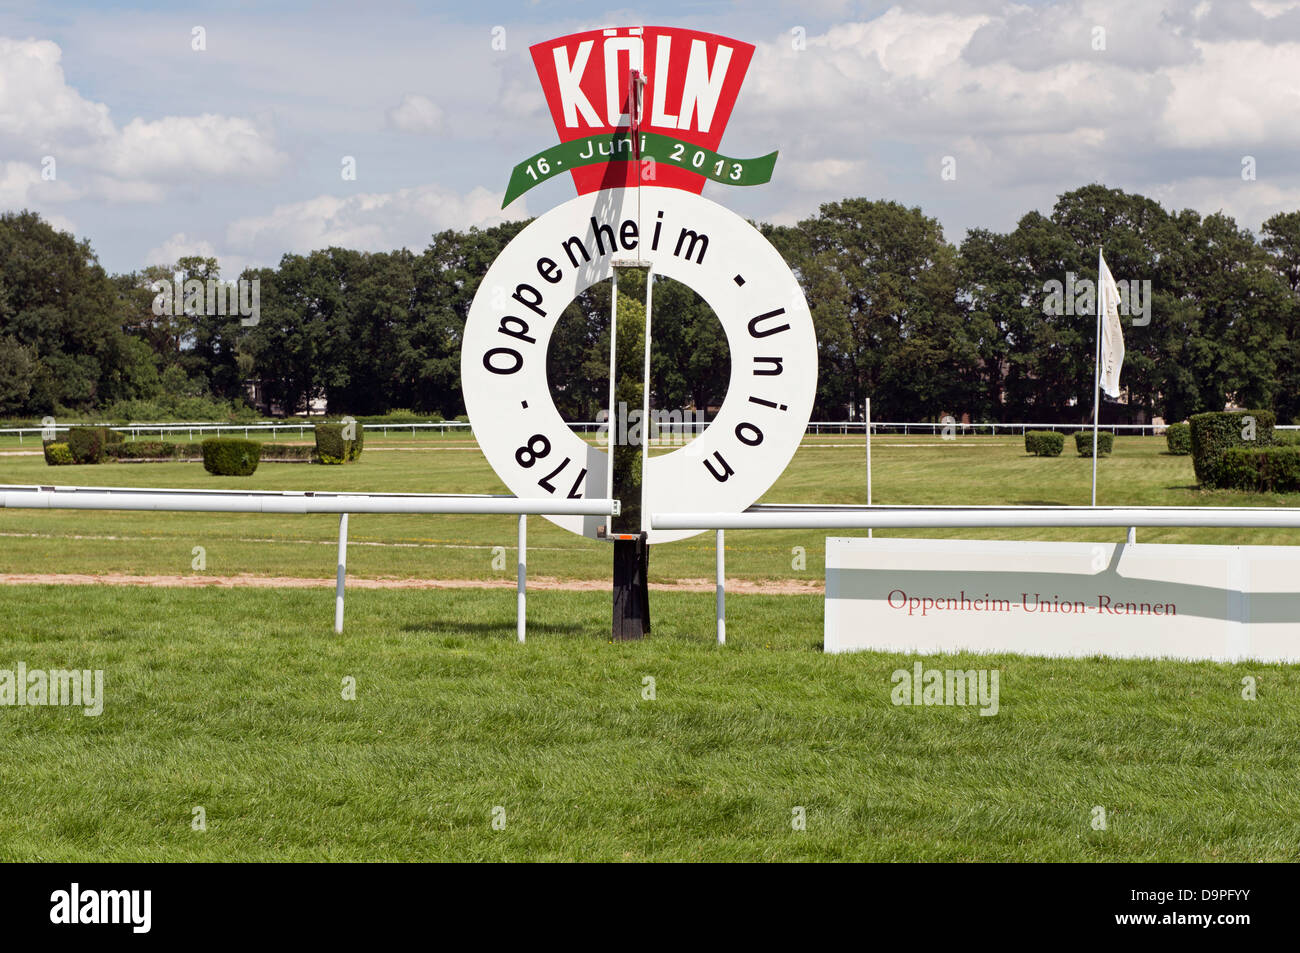 Horse racing wining post Cologne Germany - Stock Image